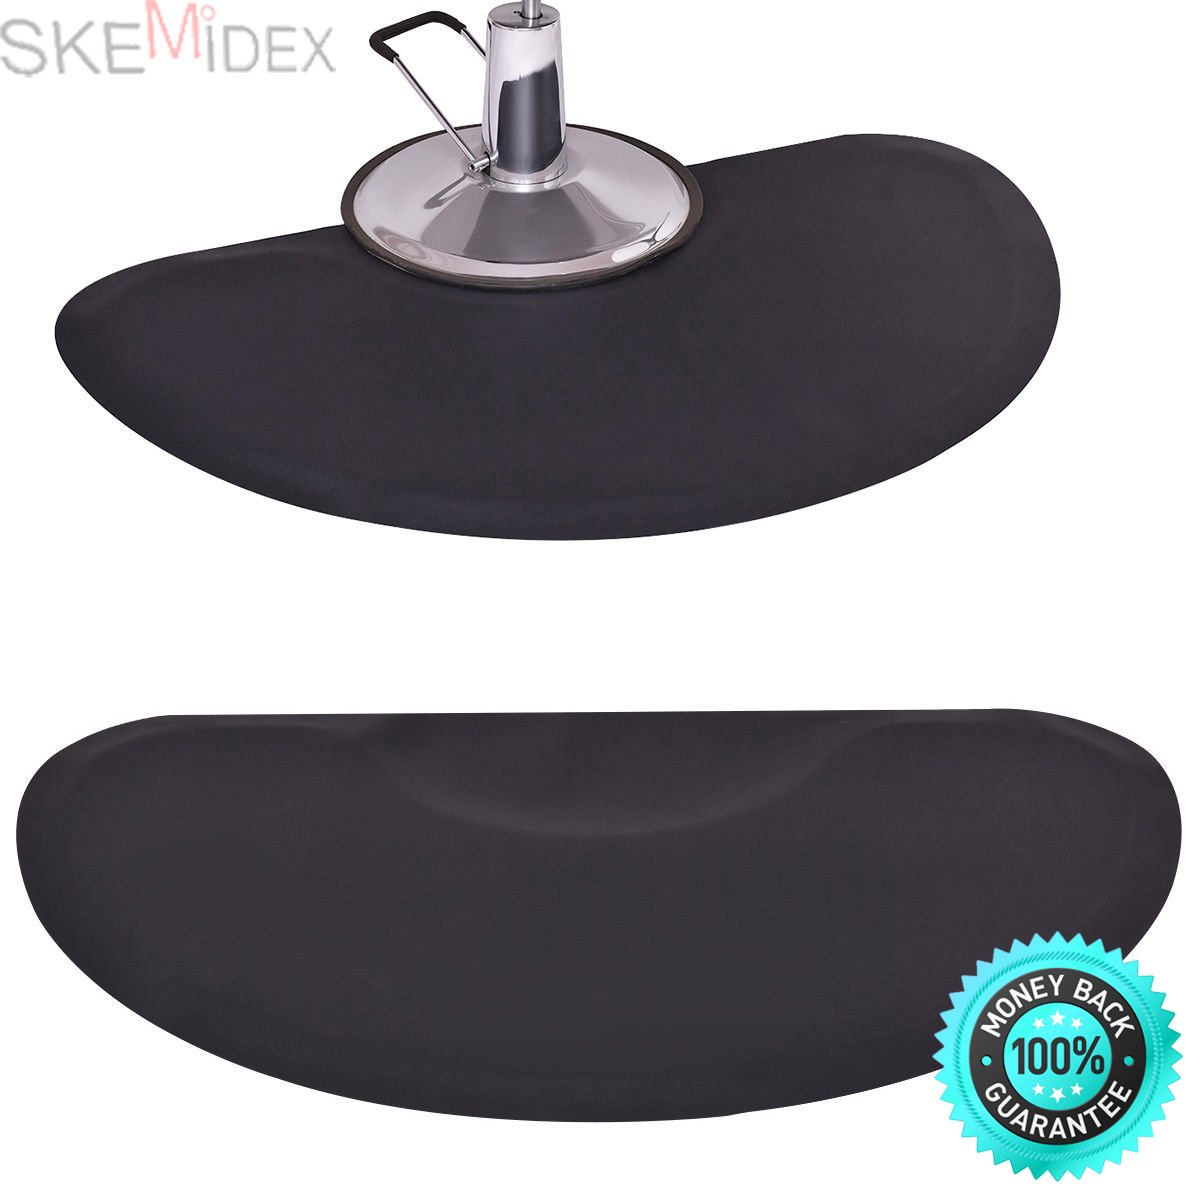 SKEMiDEX---Black Semi Circle 5'x3' 1/2'' Barber Salon Anti Fatigue Floor Mat Beauty Supplier. Can be used with barber chairs, salon chairs, shampoo stations and more